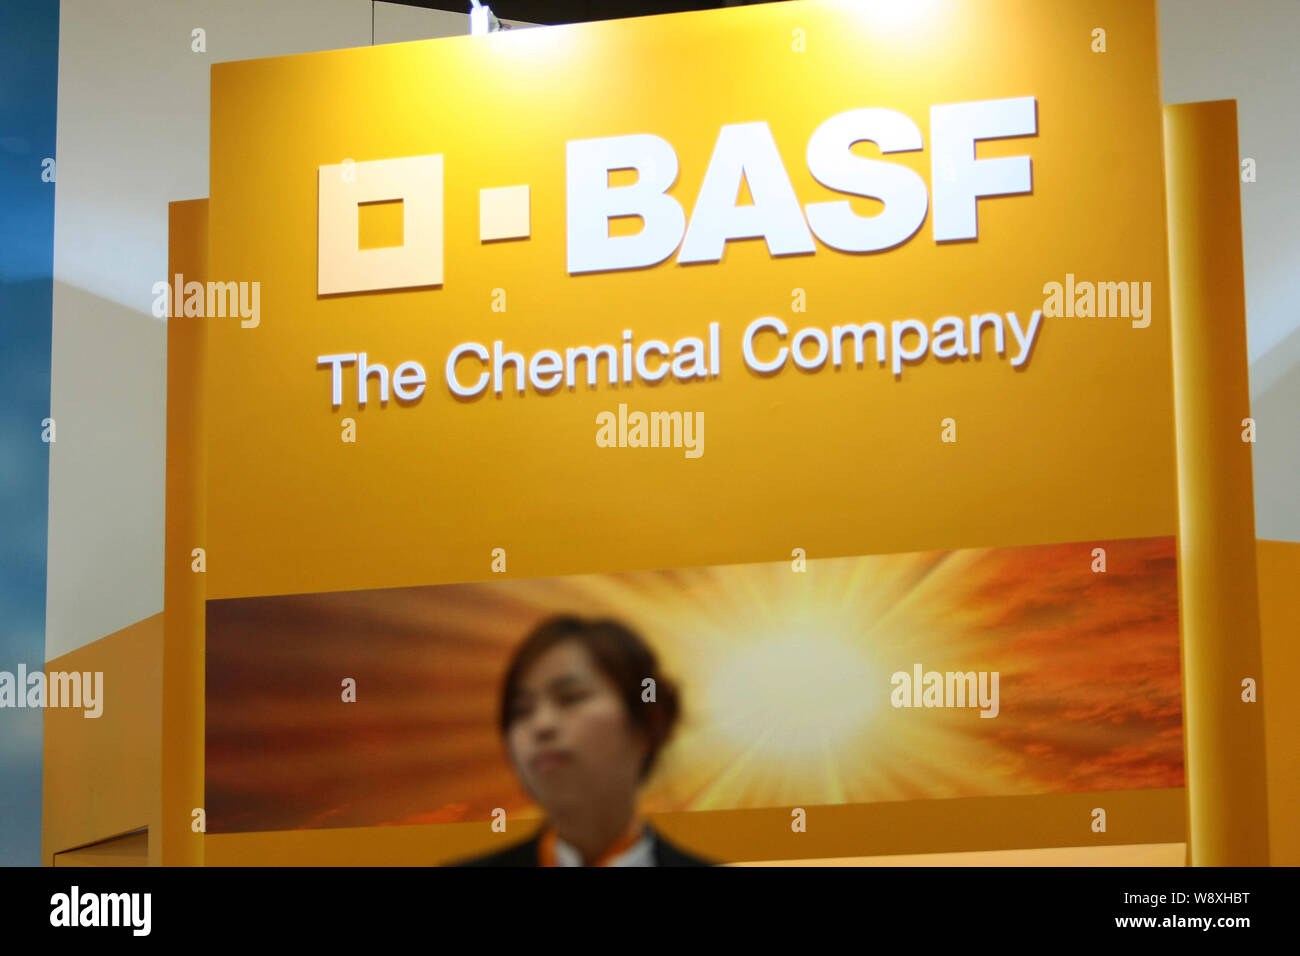 Basf Chemicals Stock Photos & Basf Chemicals Stock Images